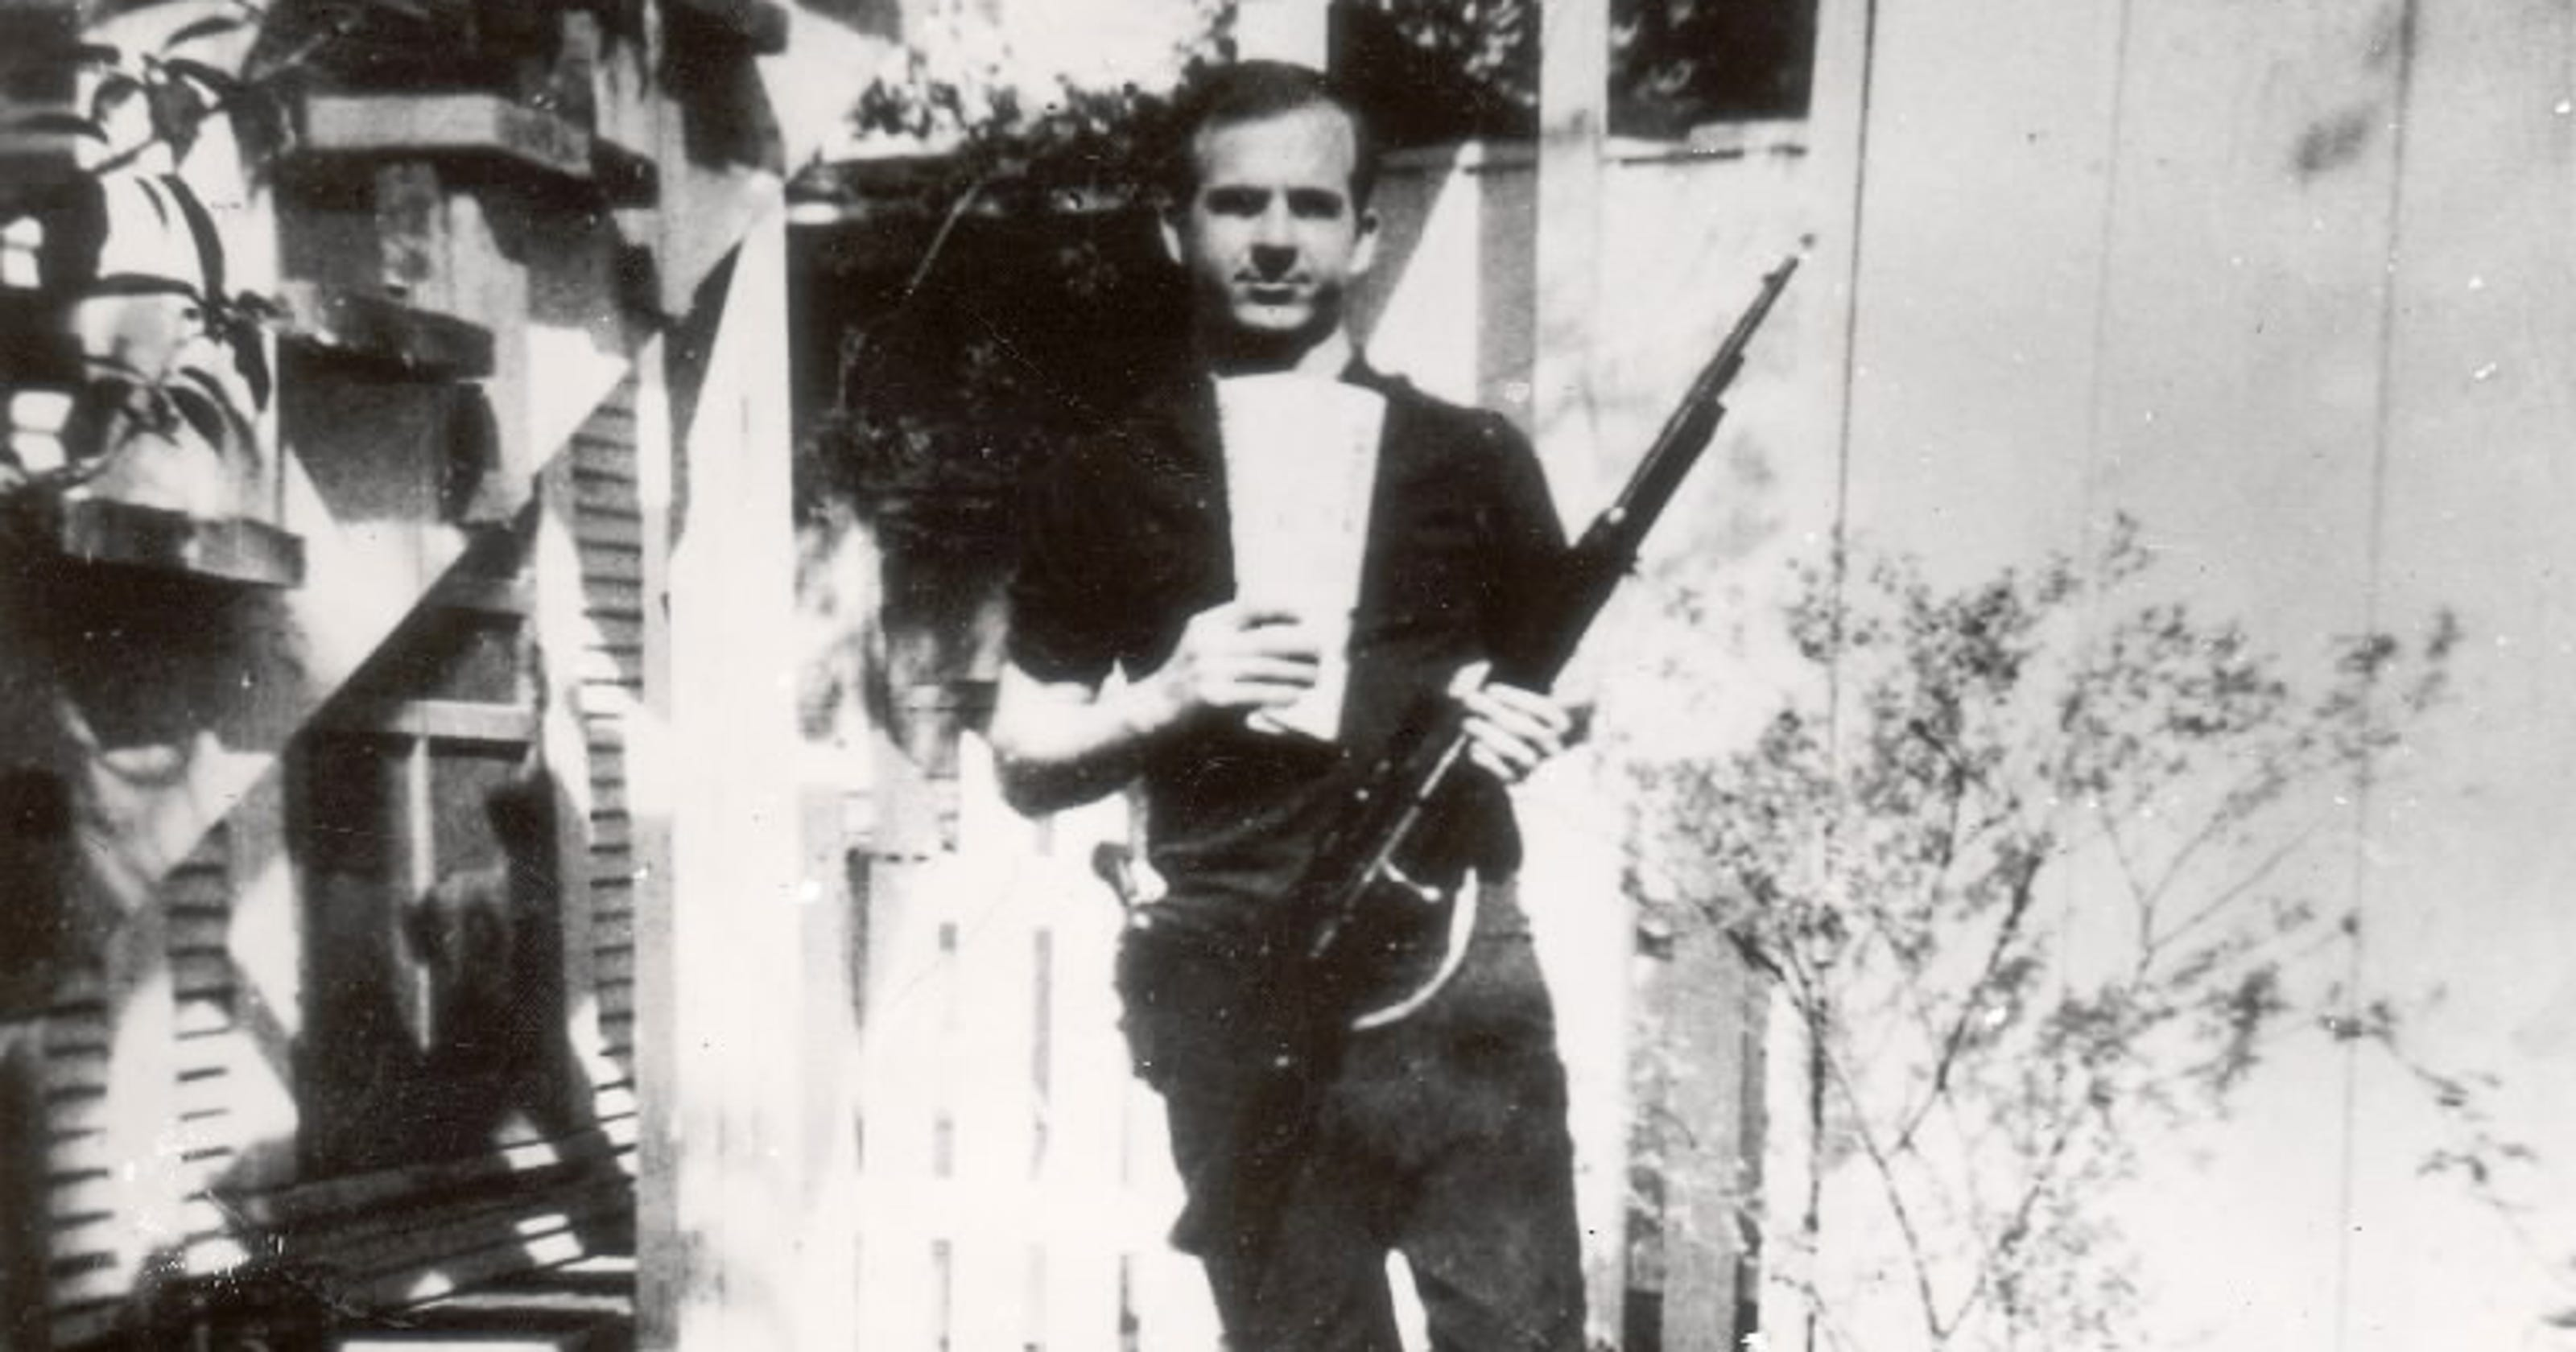 Verdict is in on whether Lee Harvey Oswald photo is a fake